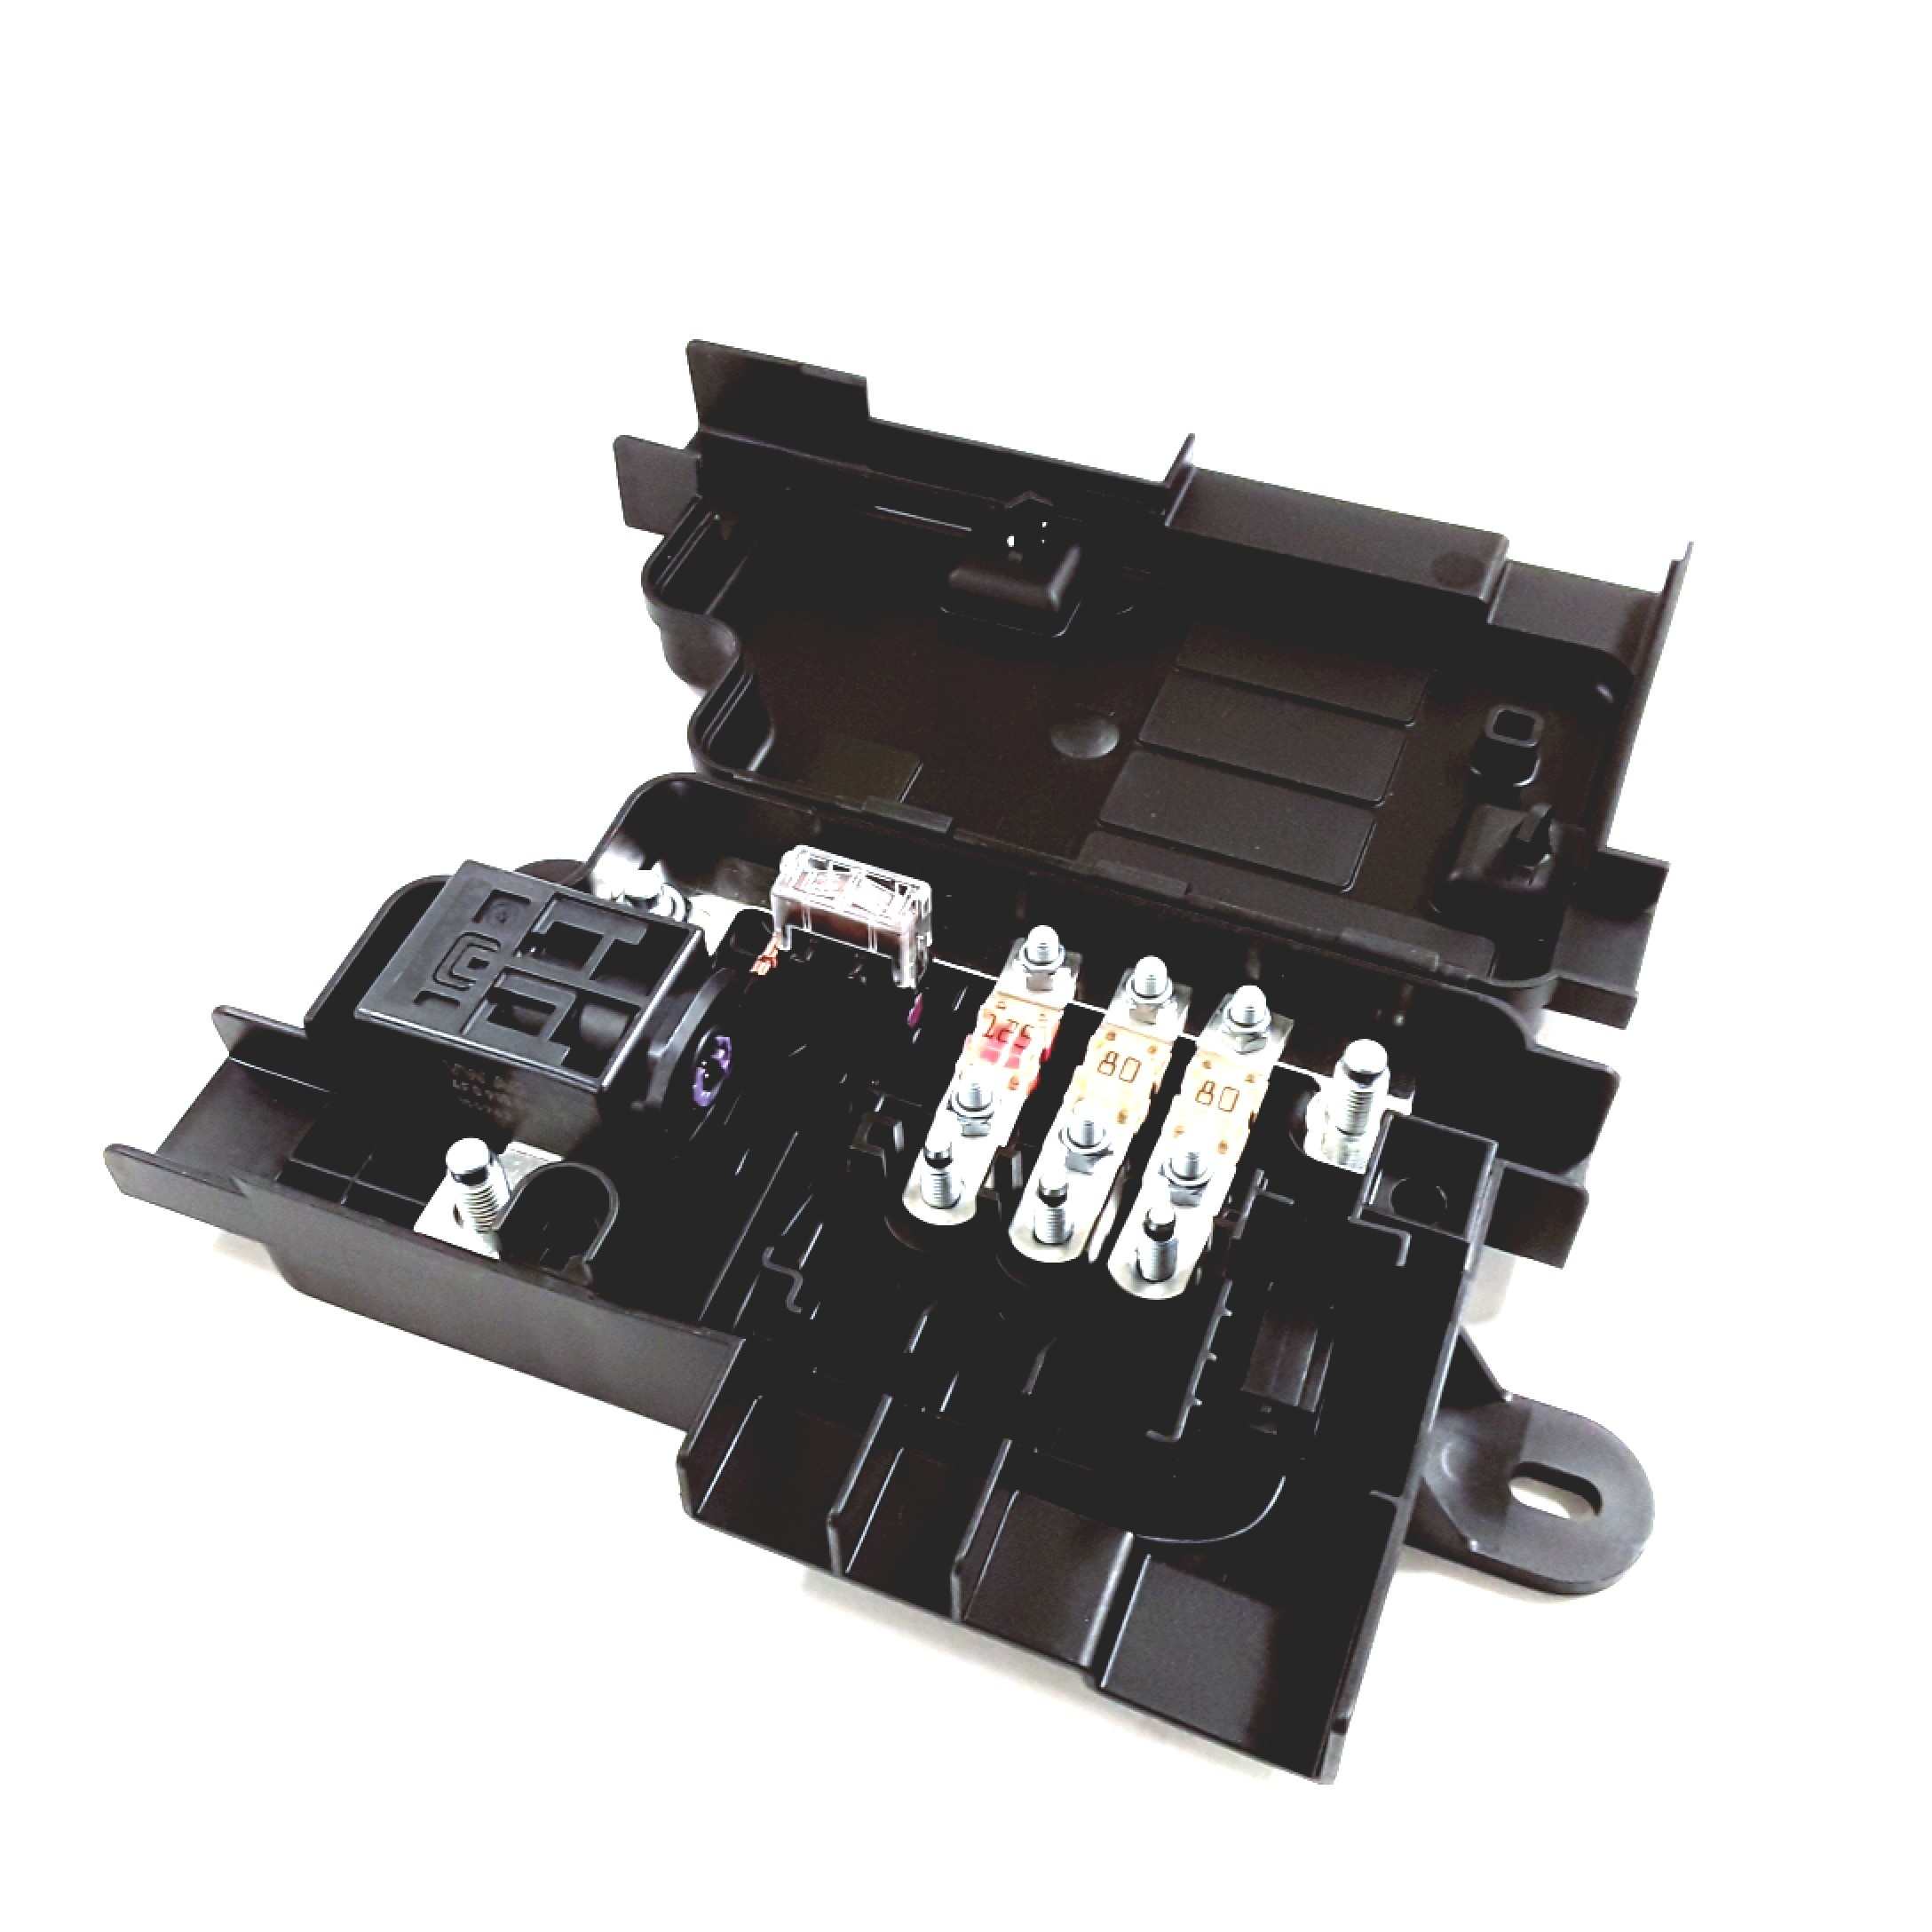 2018 Volkswagen Passat Fuse Box  Battery Protection  3 6